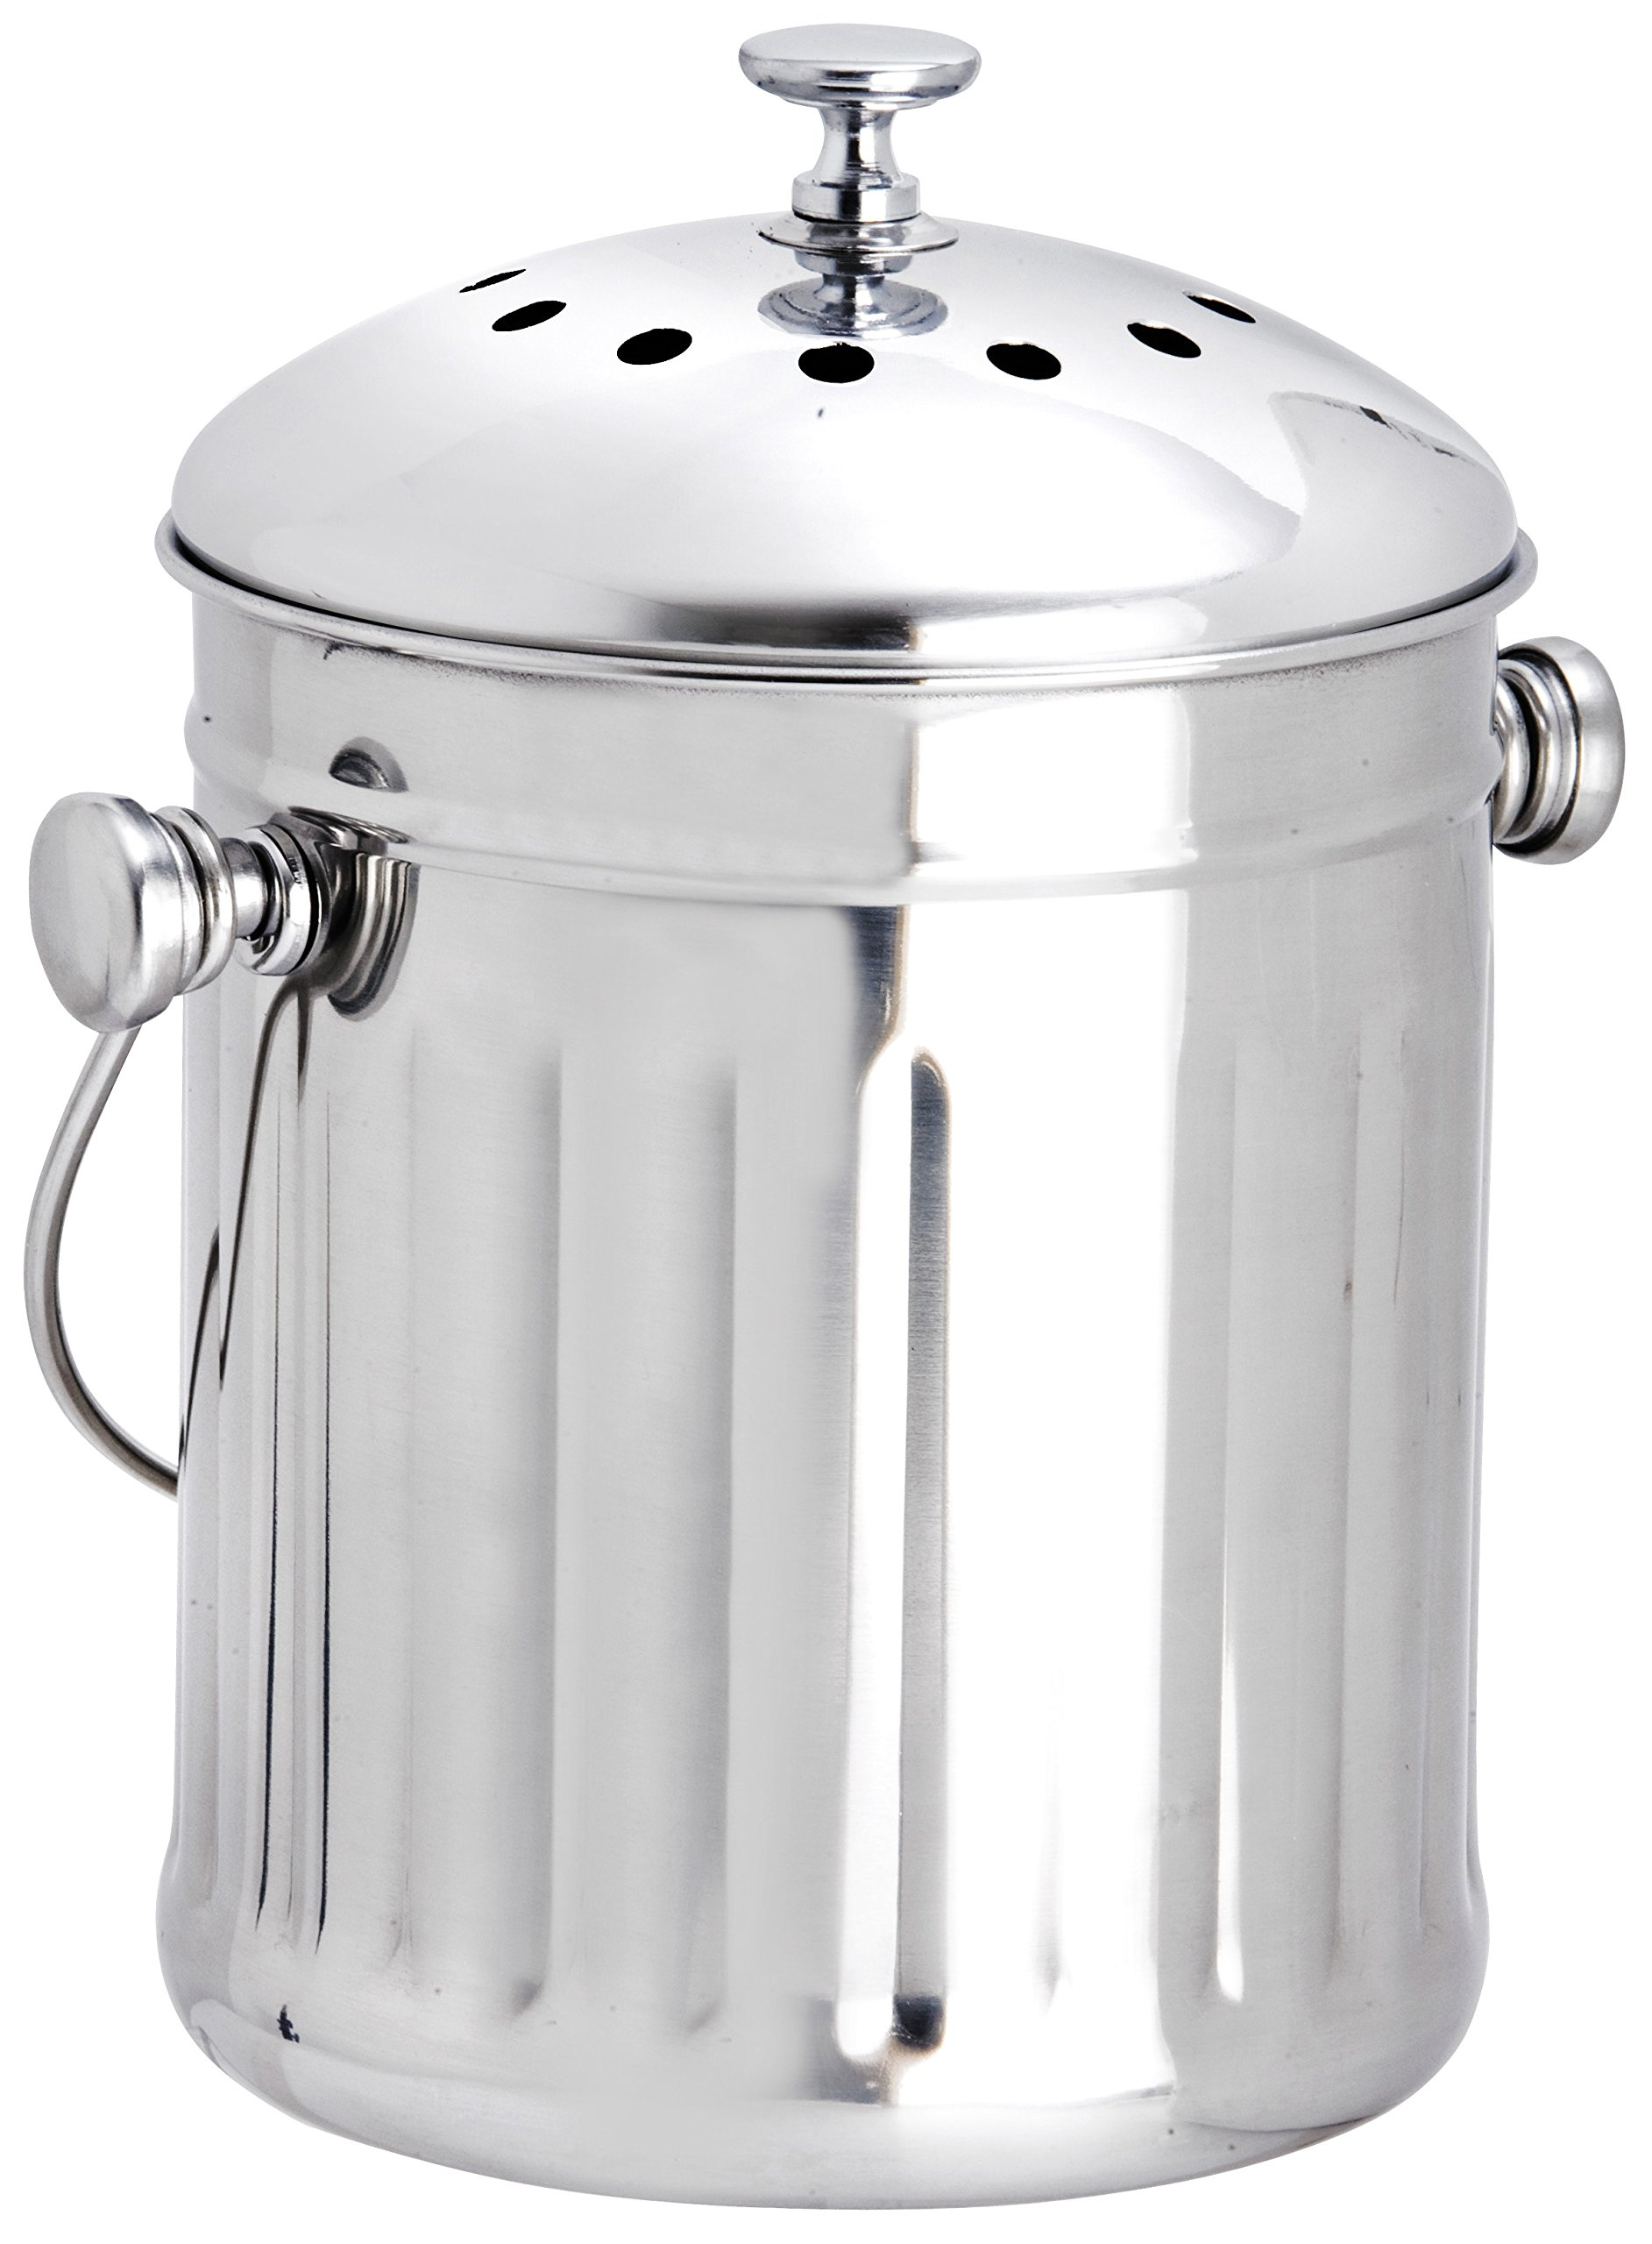 Eddingtons 2.25 Litre Mini Tabletop Compost Pail / Tea Bag Bin, Stainless Steel by Eddingtons